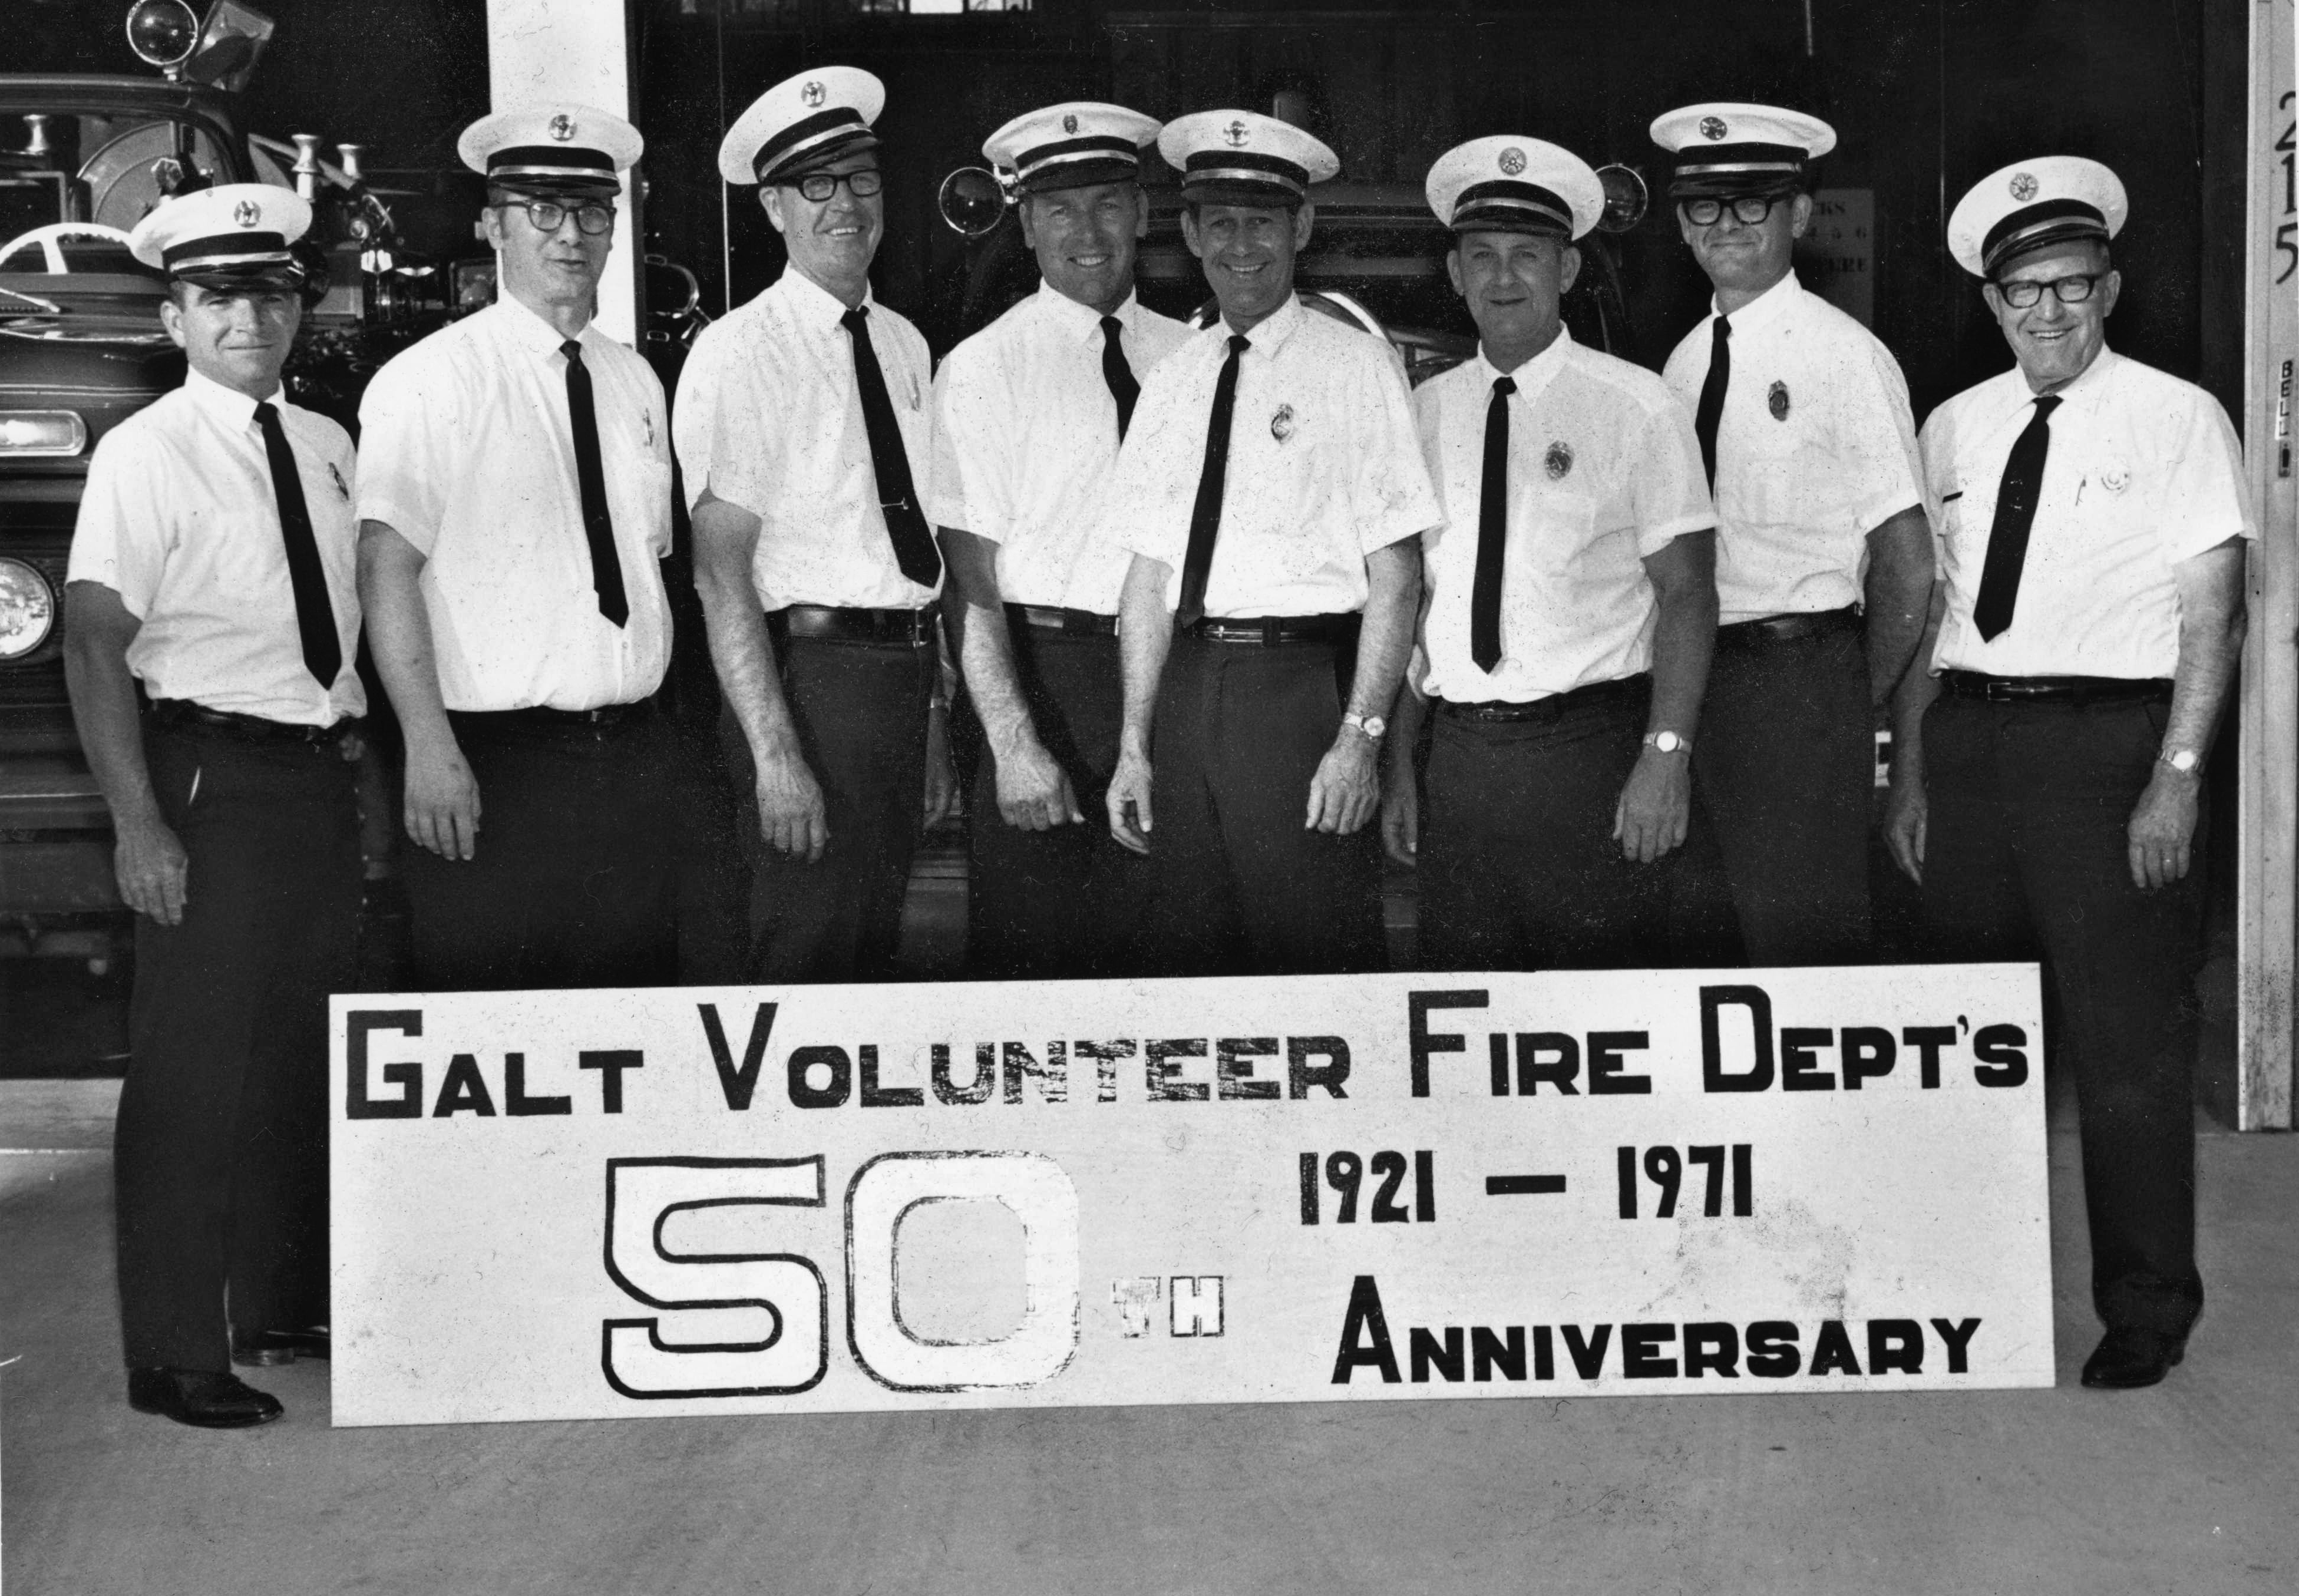 The Galt Volunteer Fire Department&#39s 50th Anniversary picture in 1971.